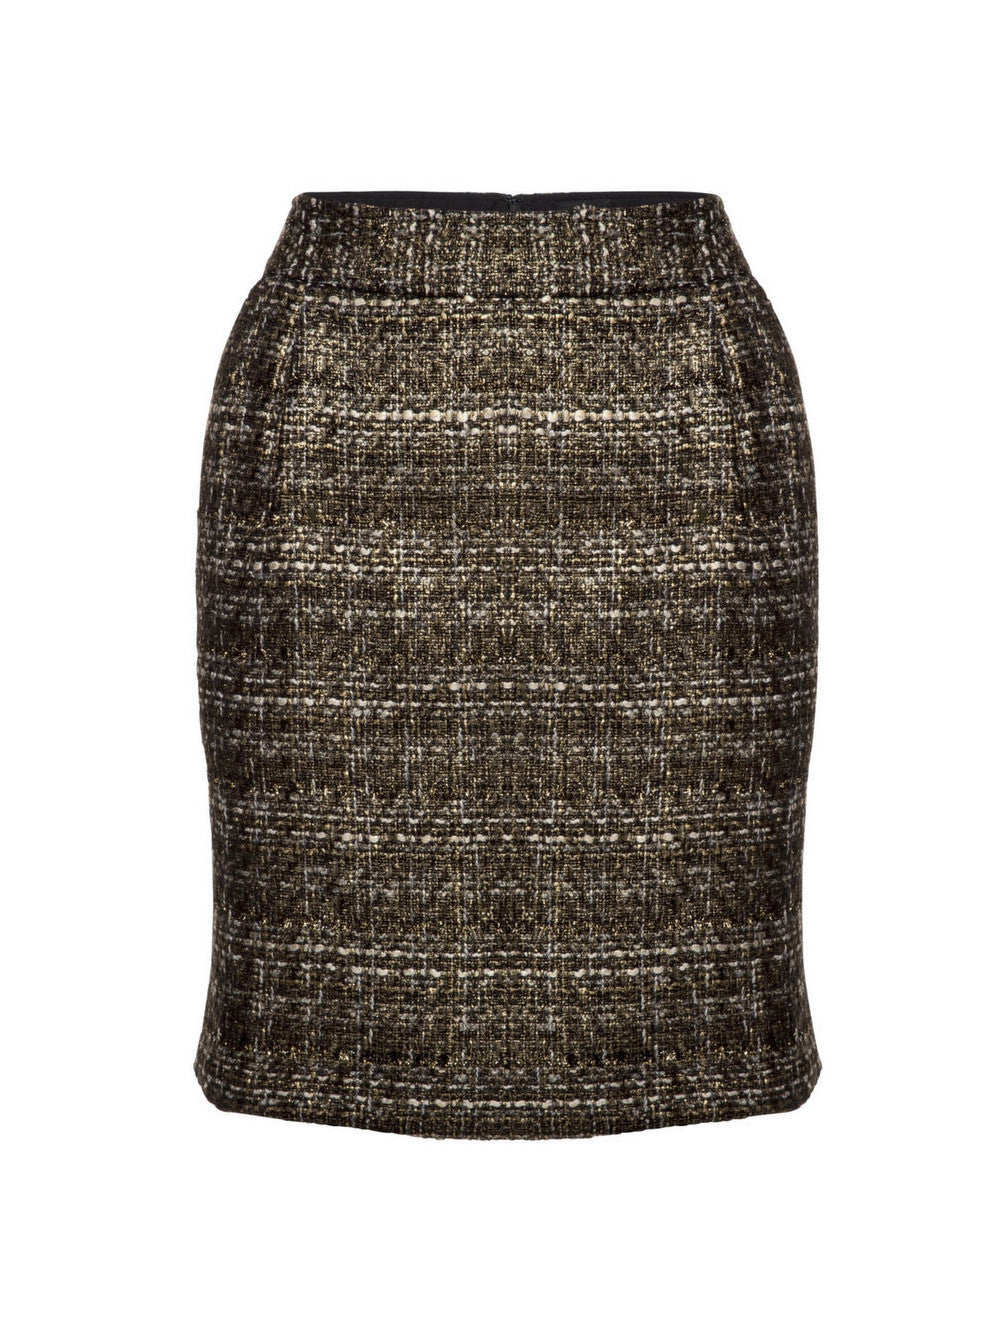 We Have Lingered Boucle Skirt - Little Joe Woman by Gail Elliott E-Boutique  - 1